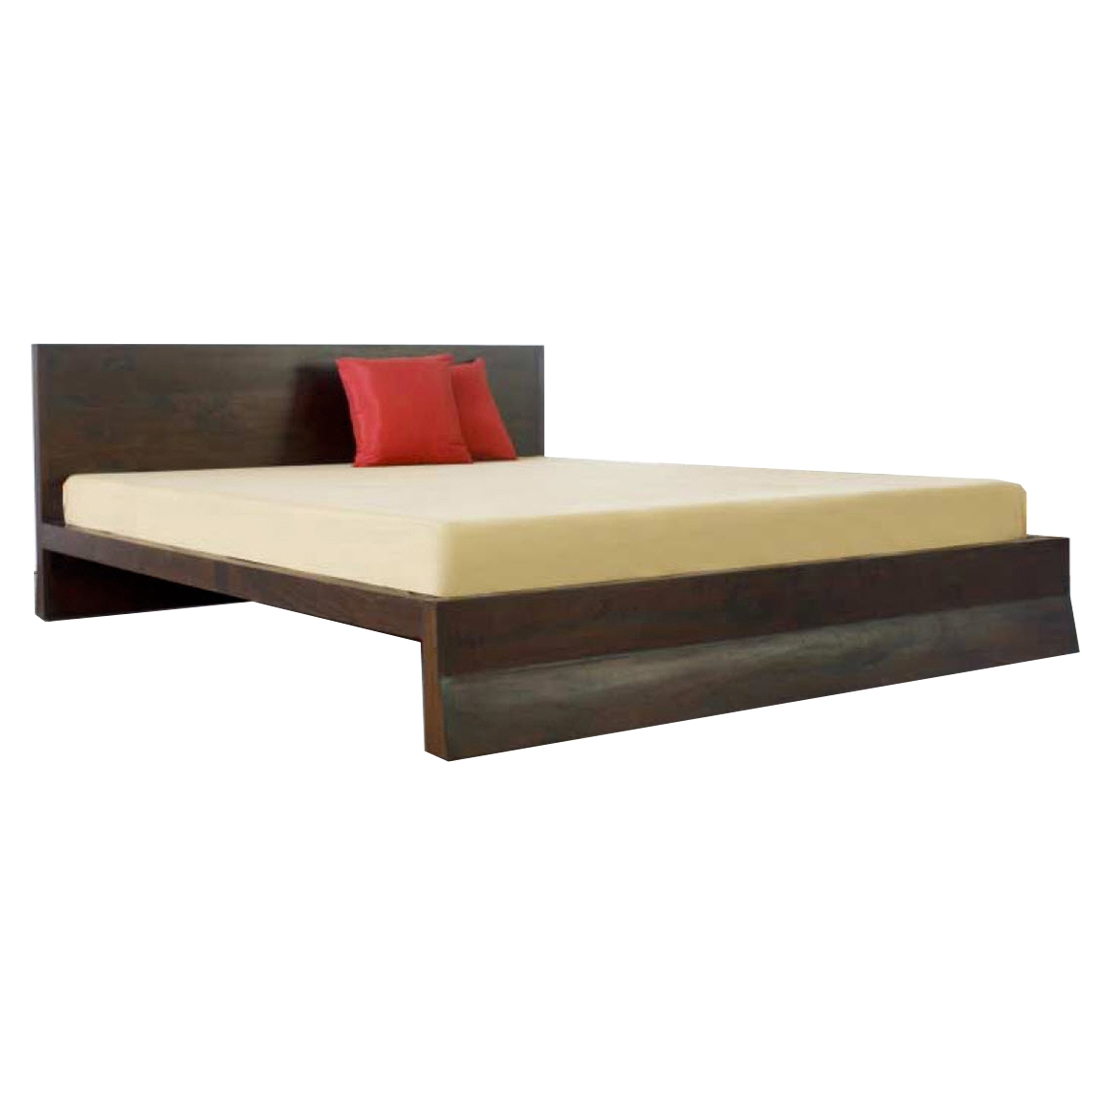 cairo platform bed hlcaimhjvbd with its minimalist looks